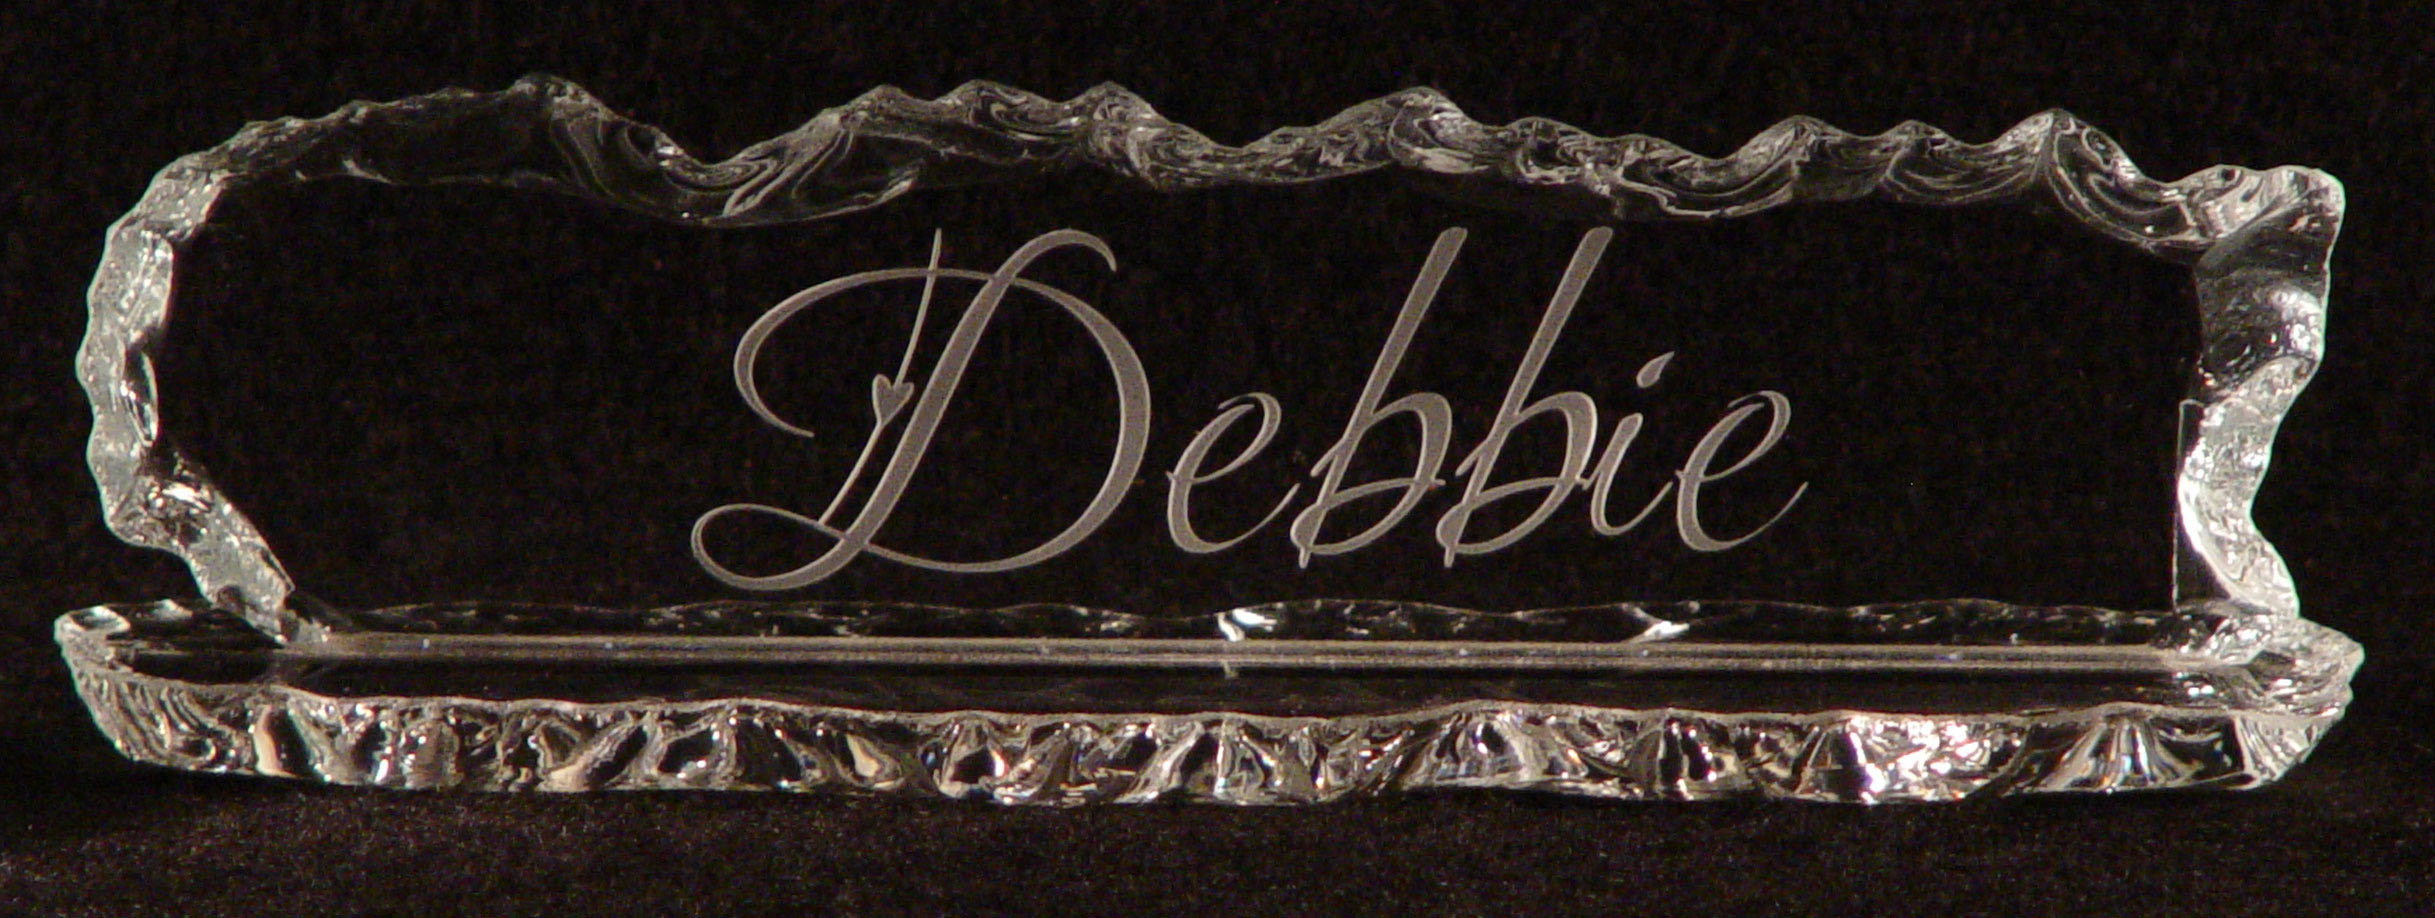 desk name smoked accessories awards center trophy glass sports corporate plates gifts plate